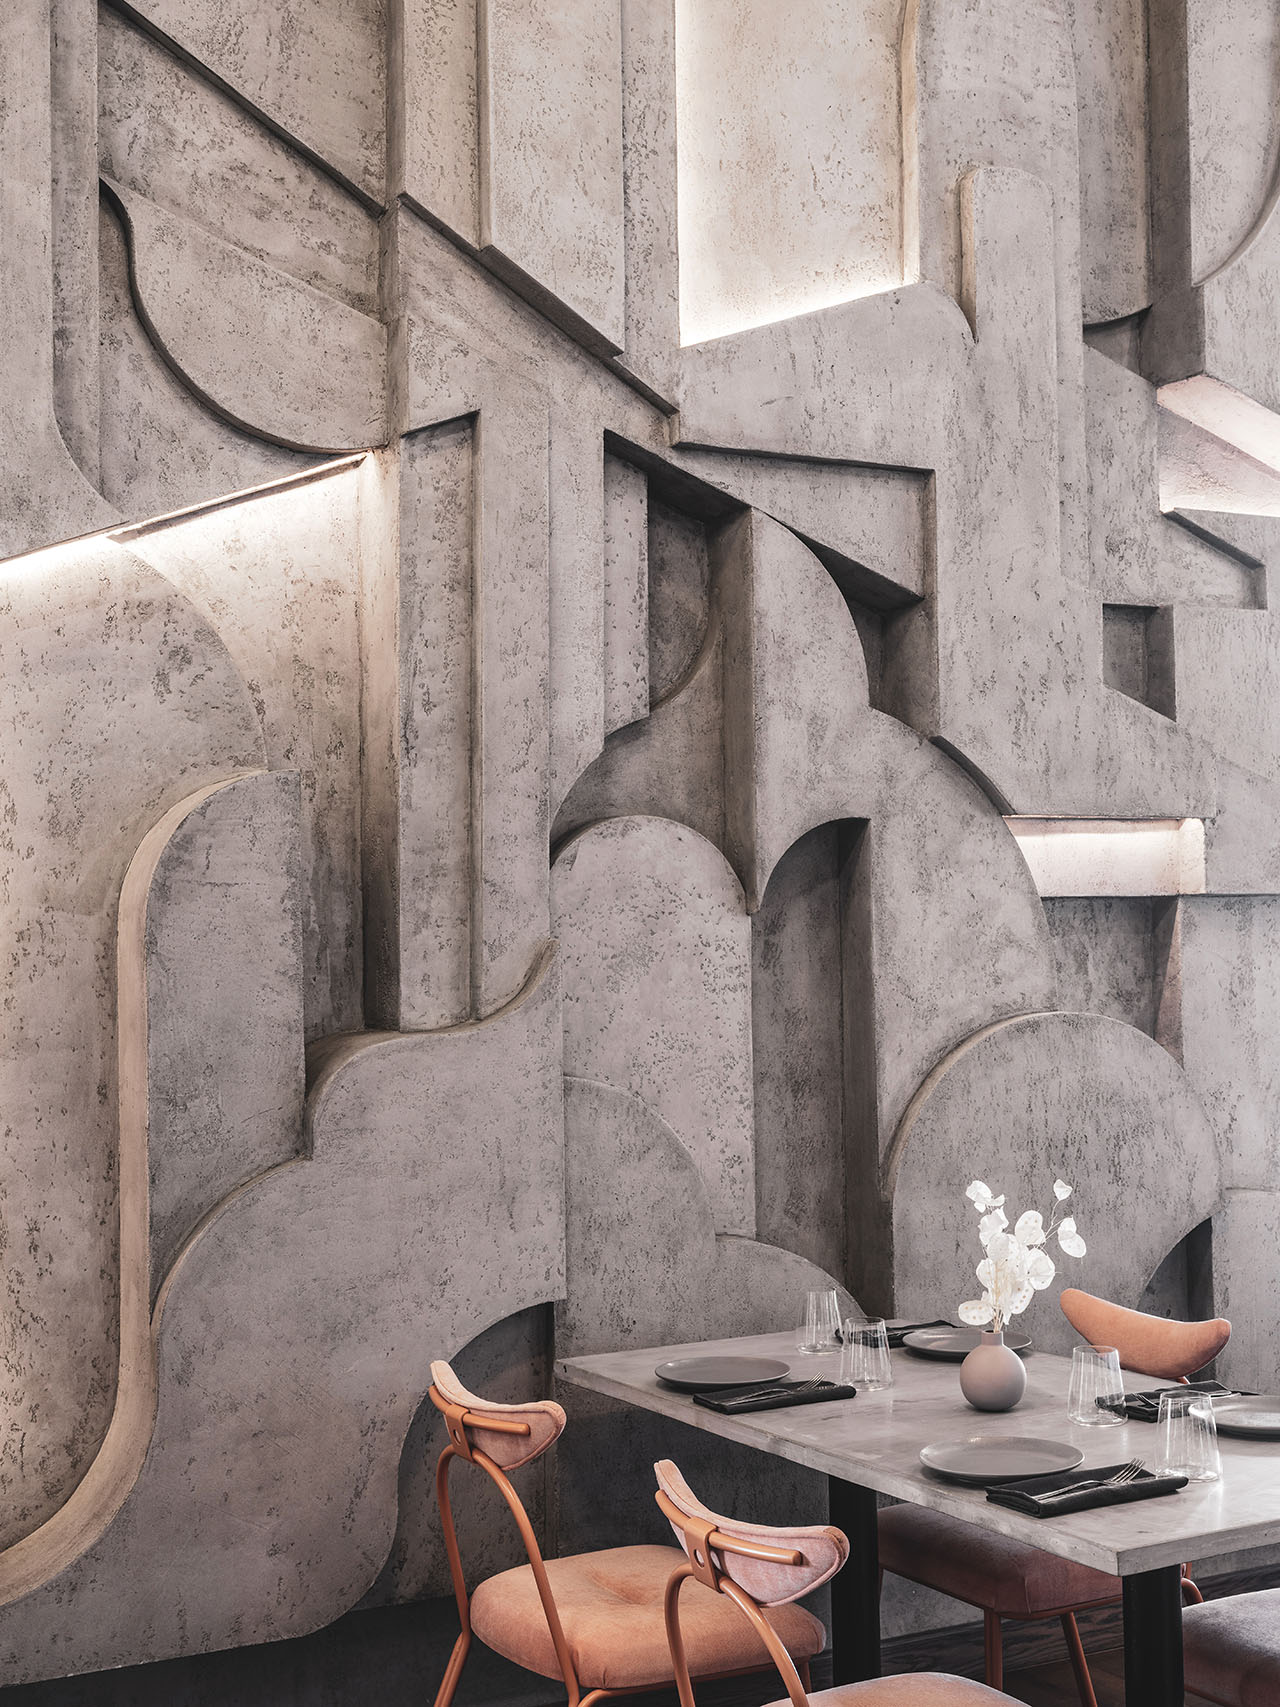 Polet Café by Asthetique in Moscow, Russia. Photography byMikhail Loskutov.